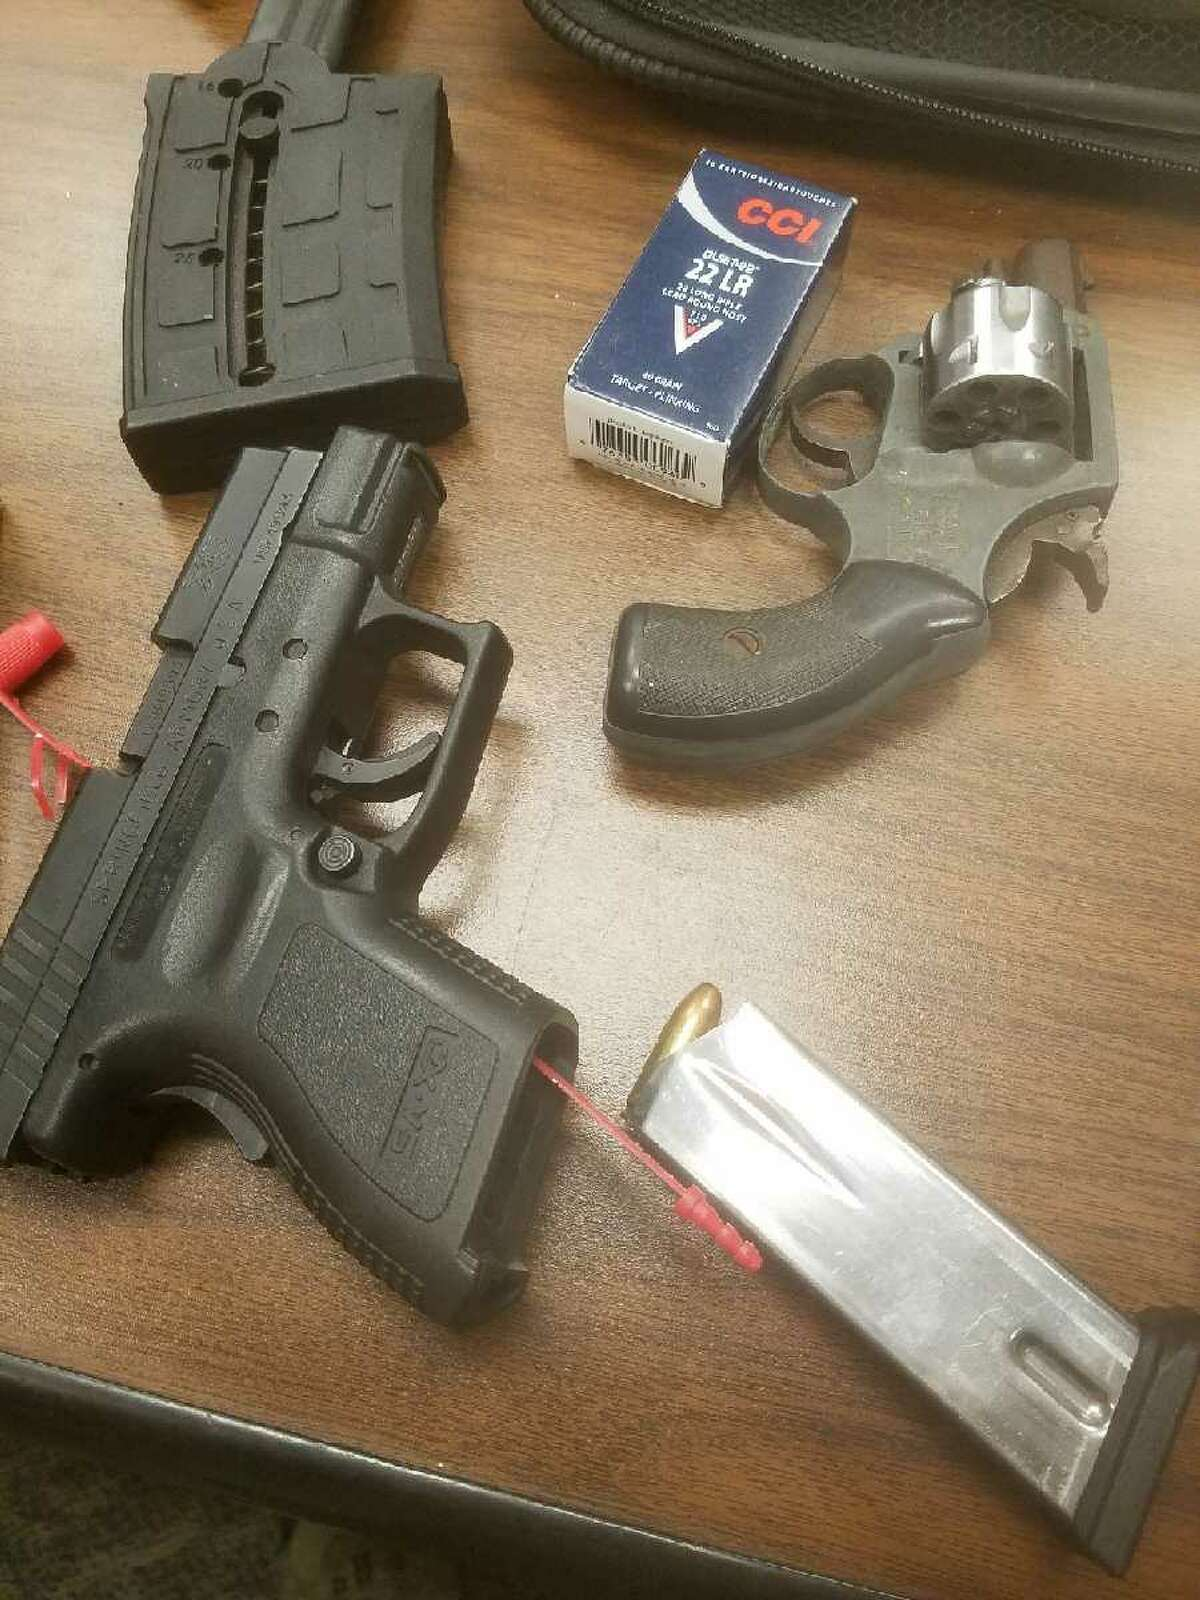 Fire arms and hydroponic marijuana were seized from a Port Arthur home during an October 18, 2017 search warrant, according to the Jefferson County Sheriff's Office. Photos: JCSO